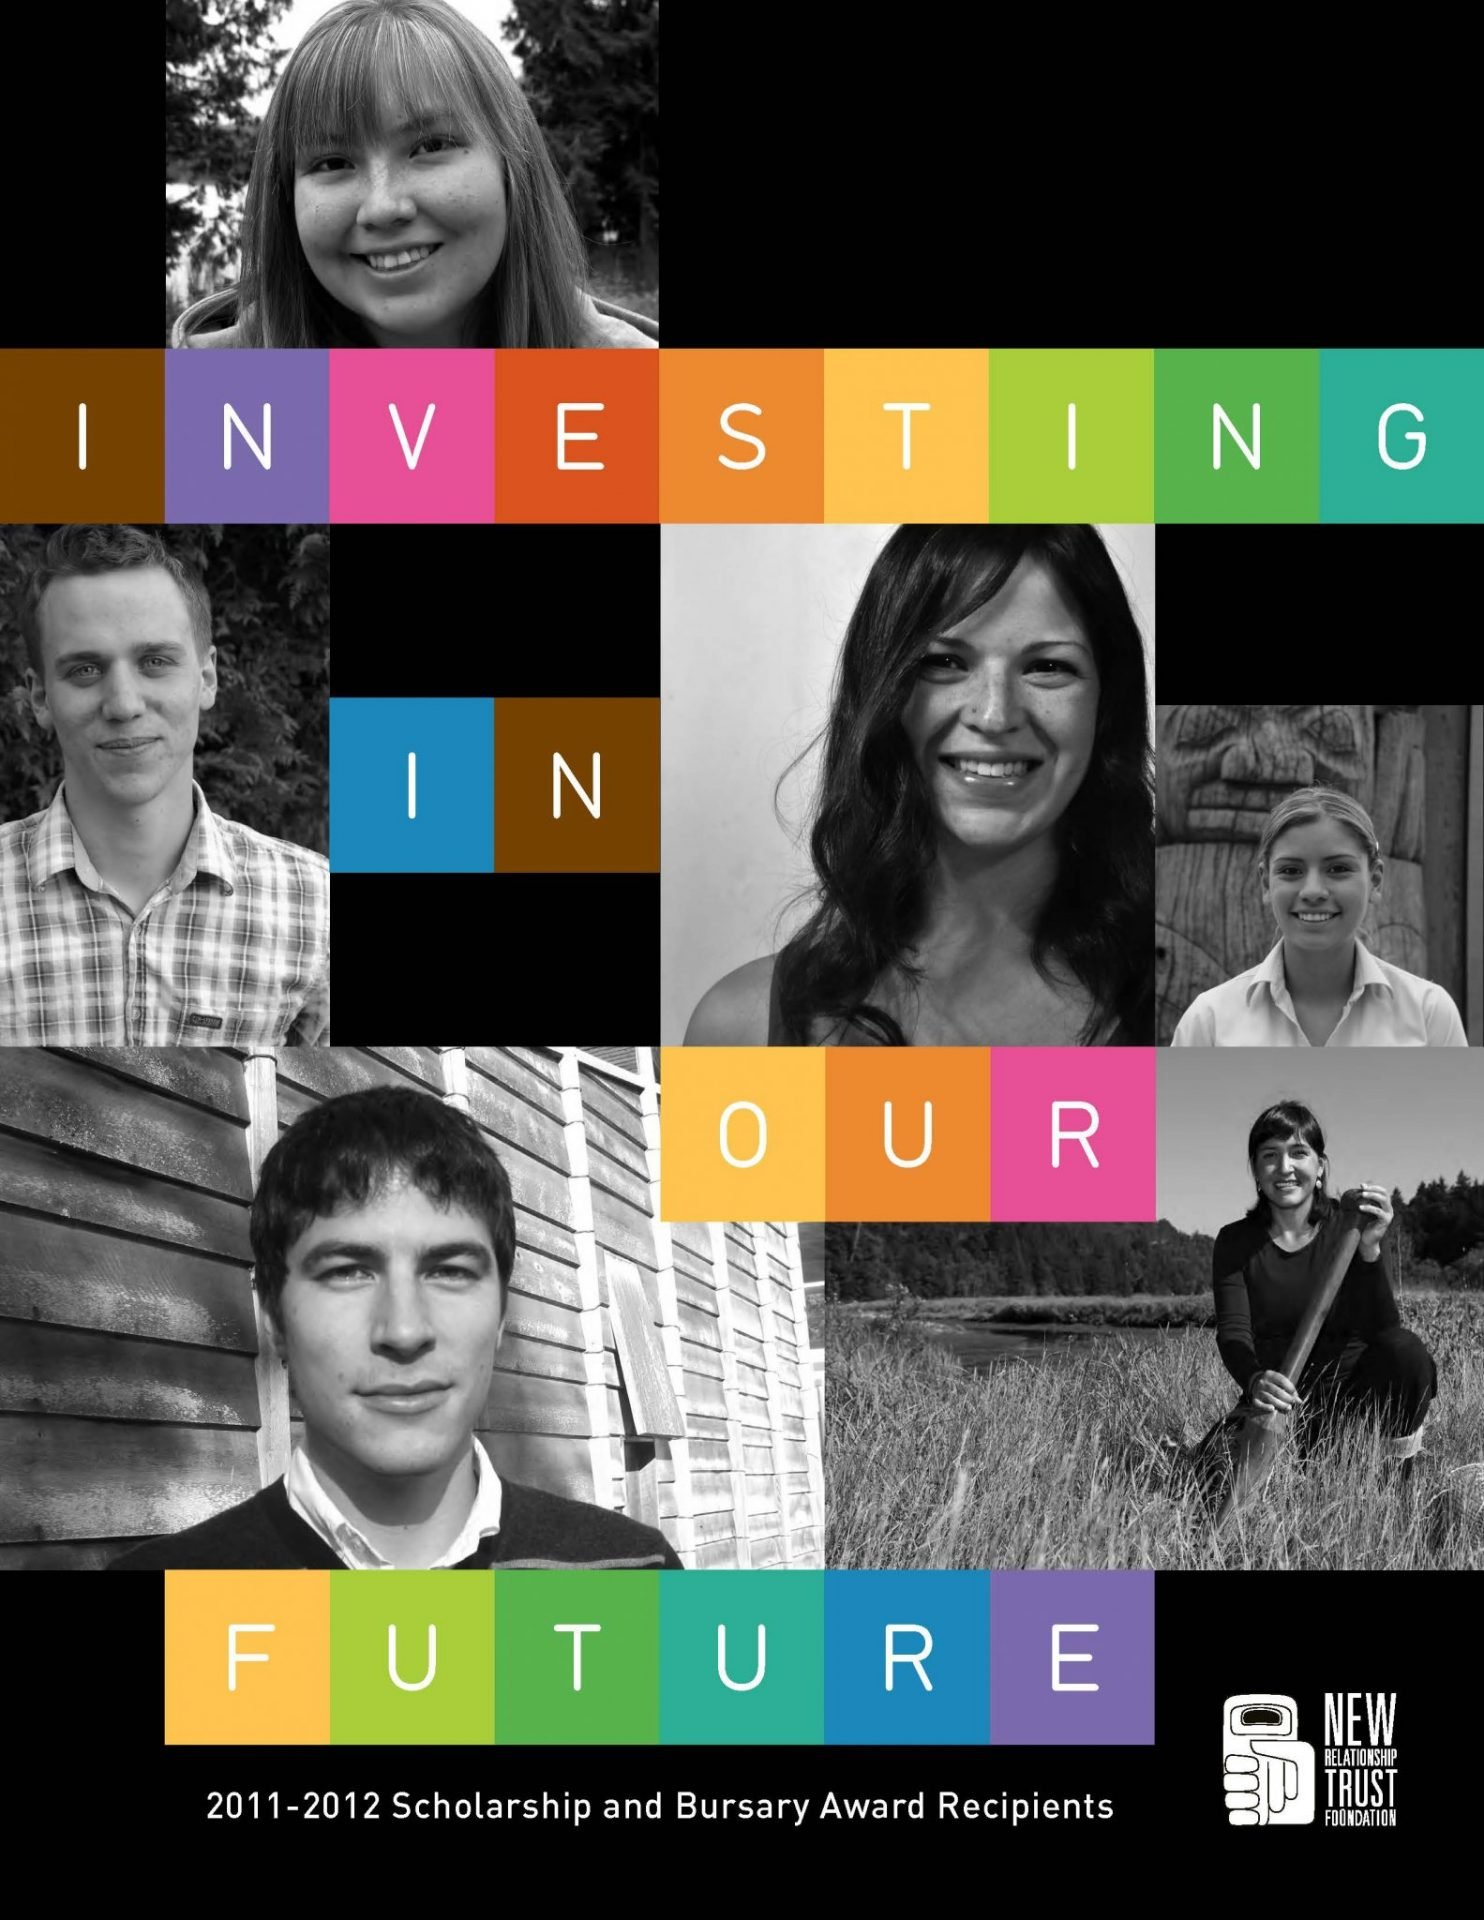 New Relationship Trust First Nations BC 2011 2012 scholarship brochure